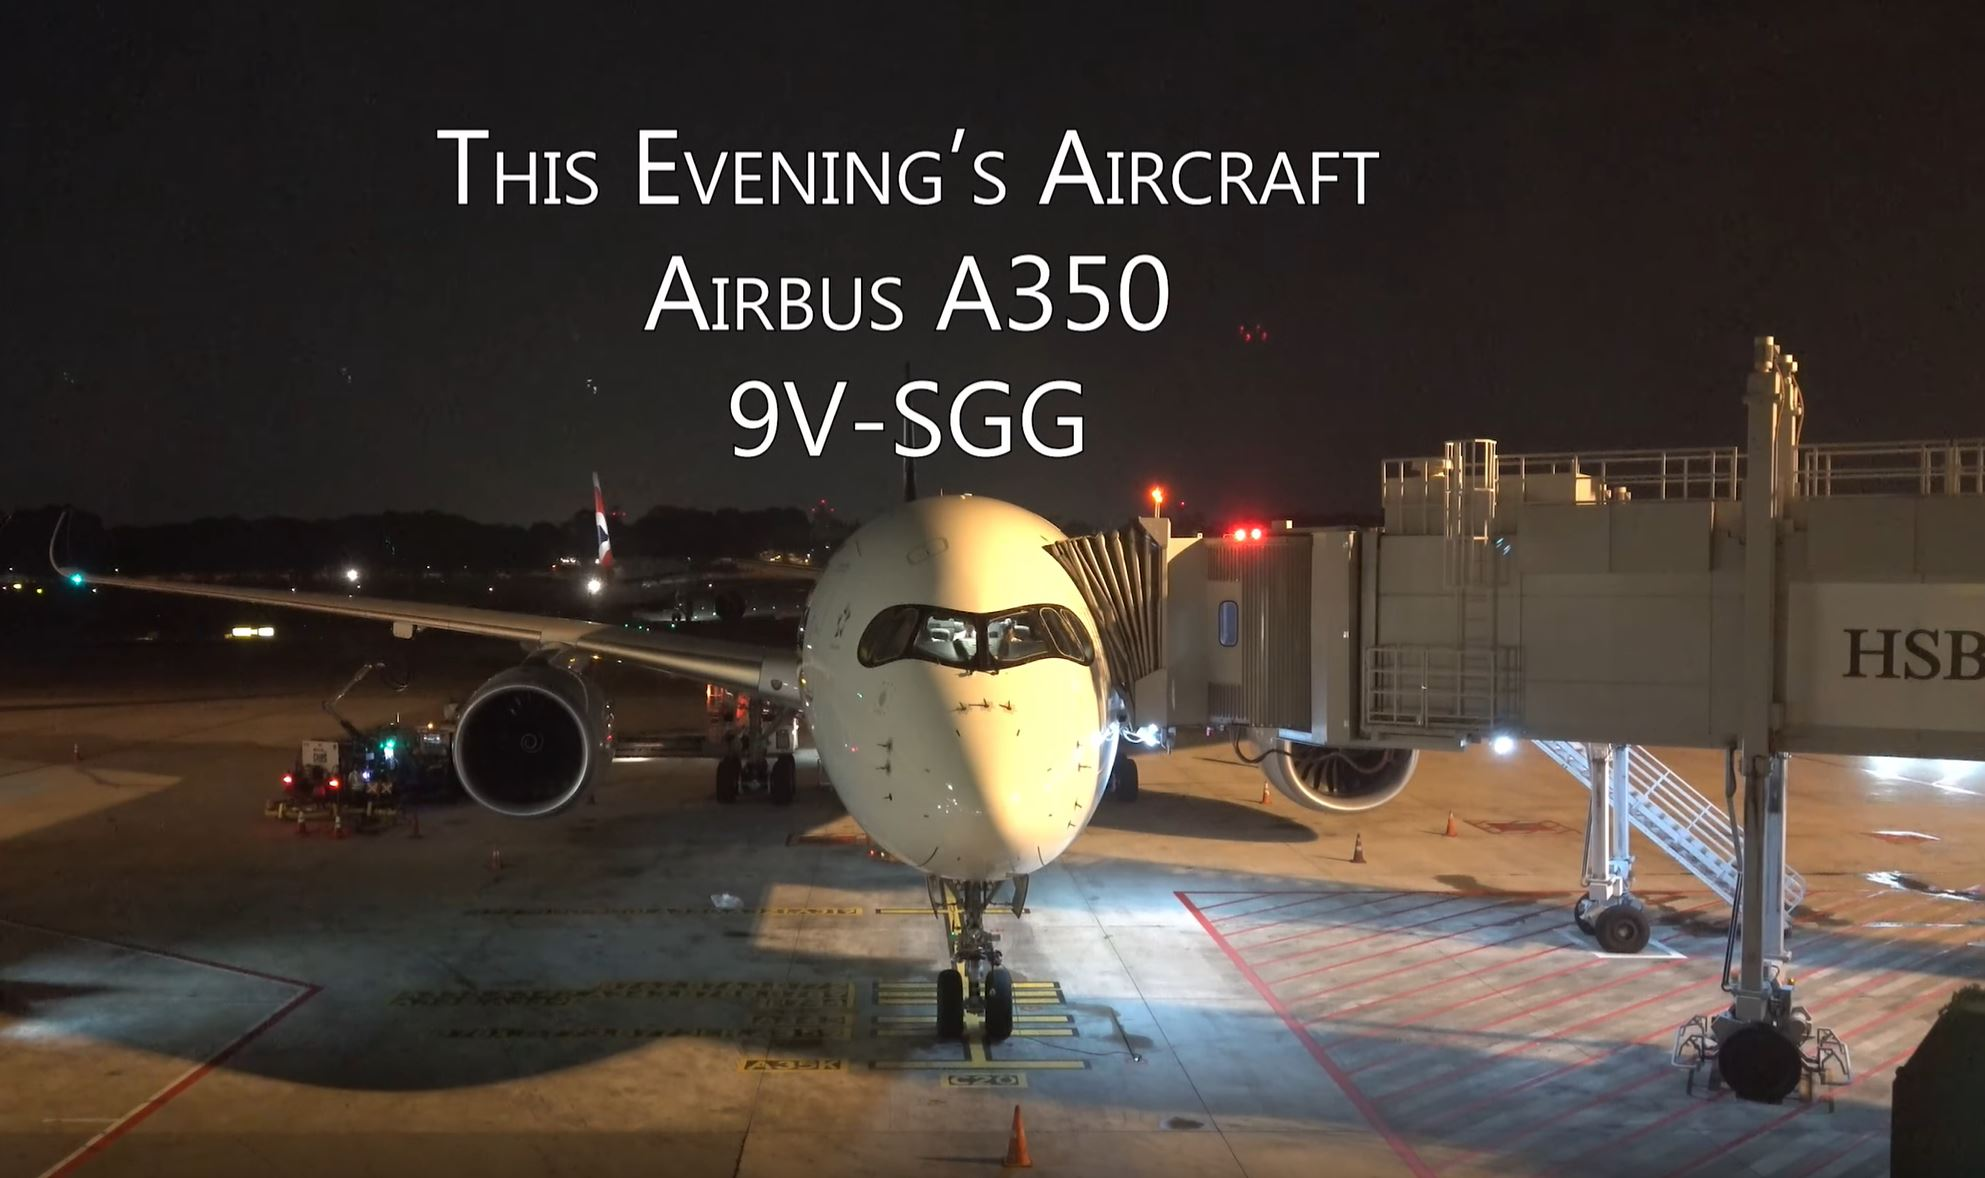 Singapore Airlines – Singapore to Los Angeles